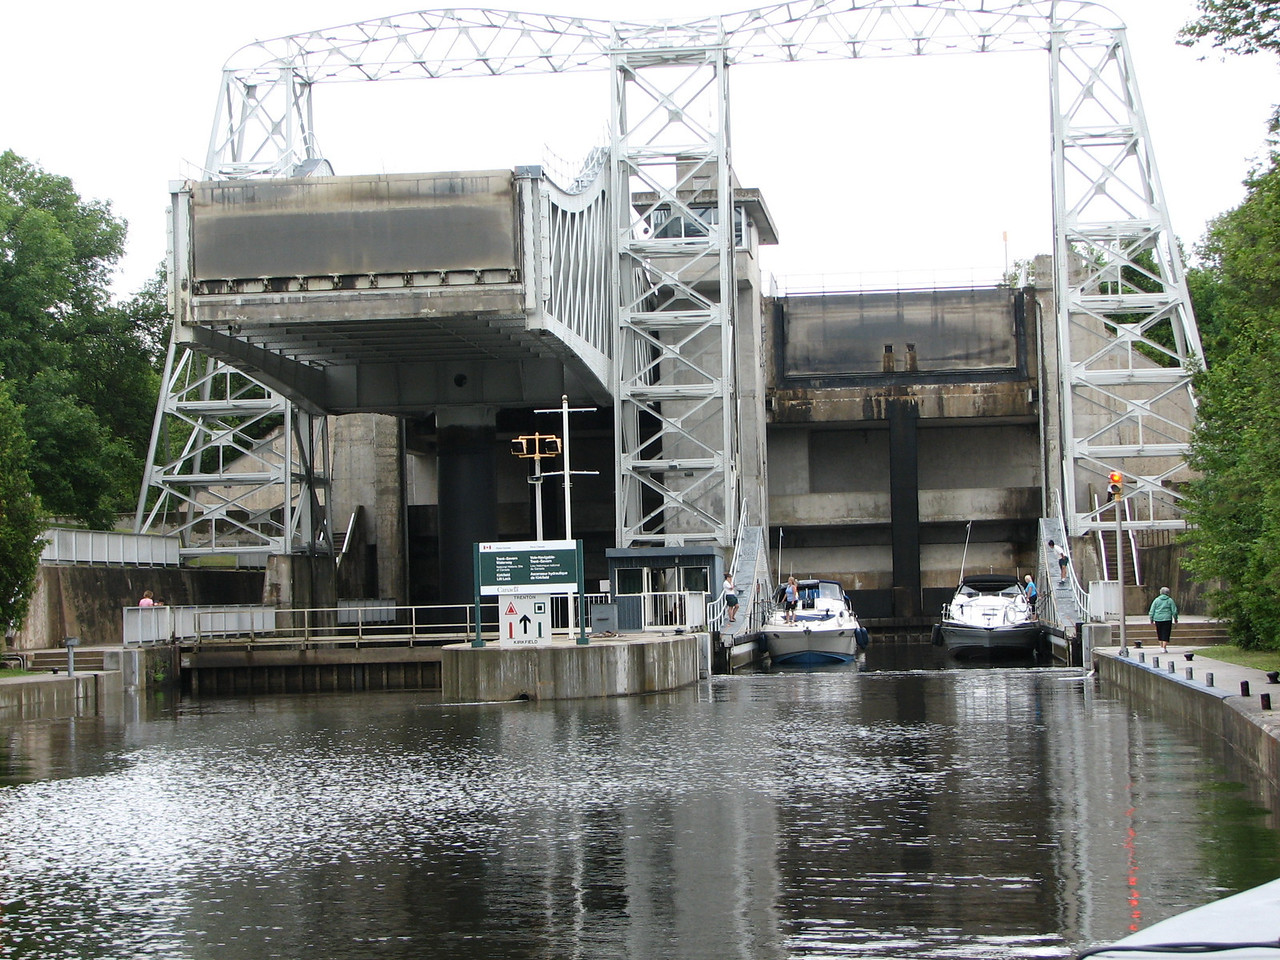 We await for the boats or leave so we can enter.  The end gate of the lower container is lowering to give the boats the proper depth for them to exit safely.  Another gate can be seen fifteen meters above the boats, holding back the water from the upper level of the canal.